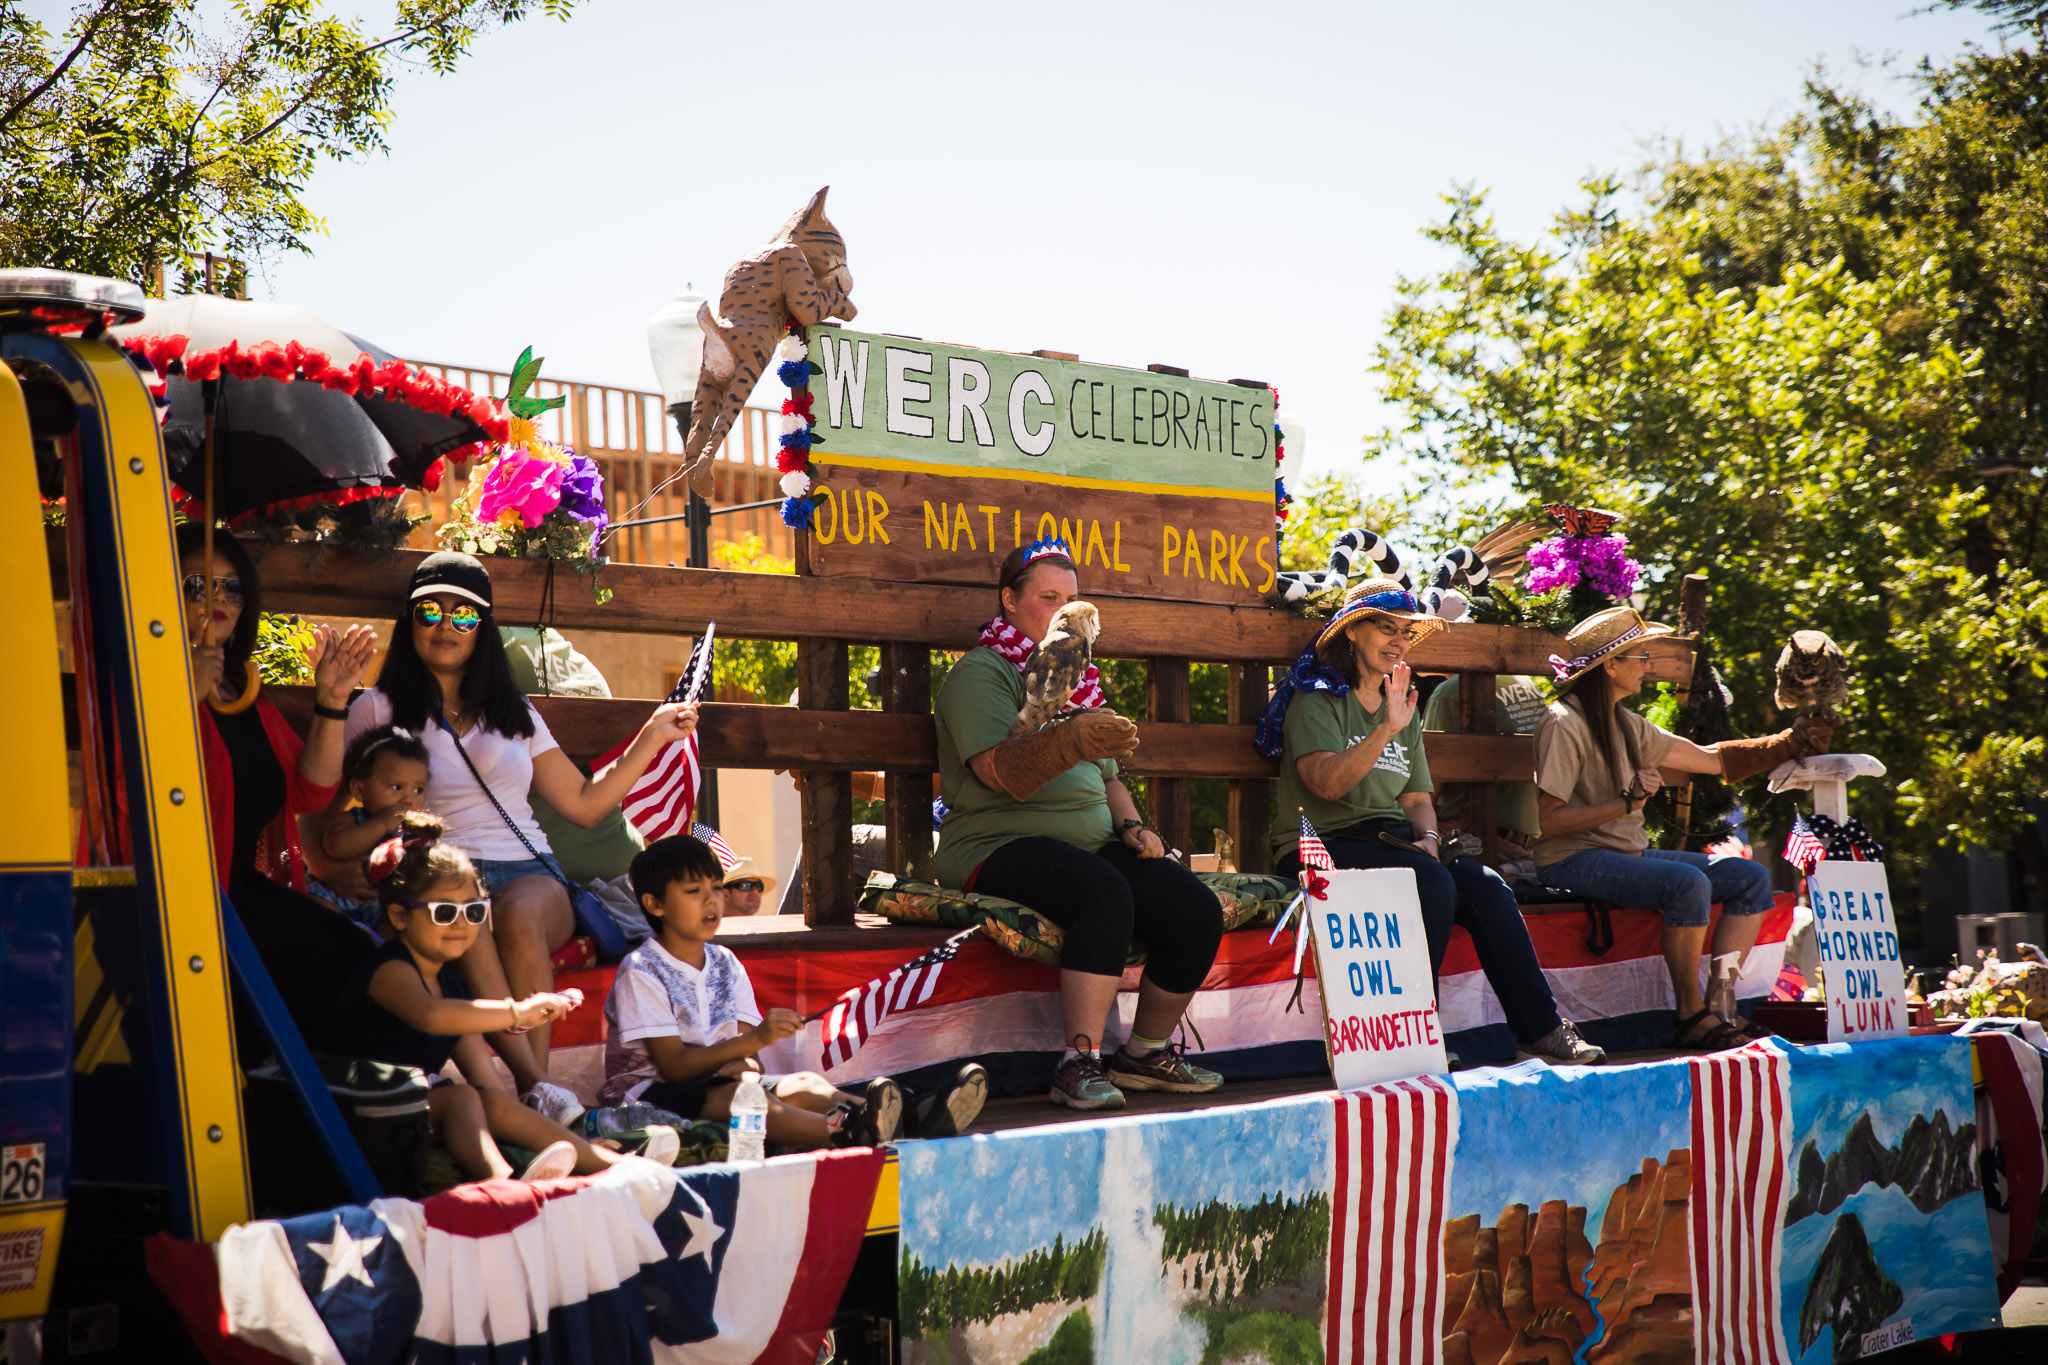 Archer_Inspired_Photography_Morgan_Hill_California_4th_of_july_parade-66.jpg